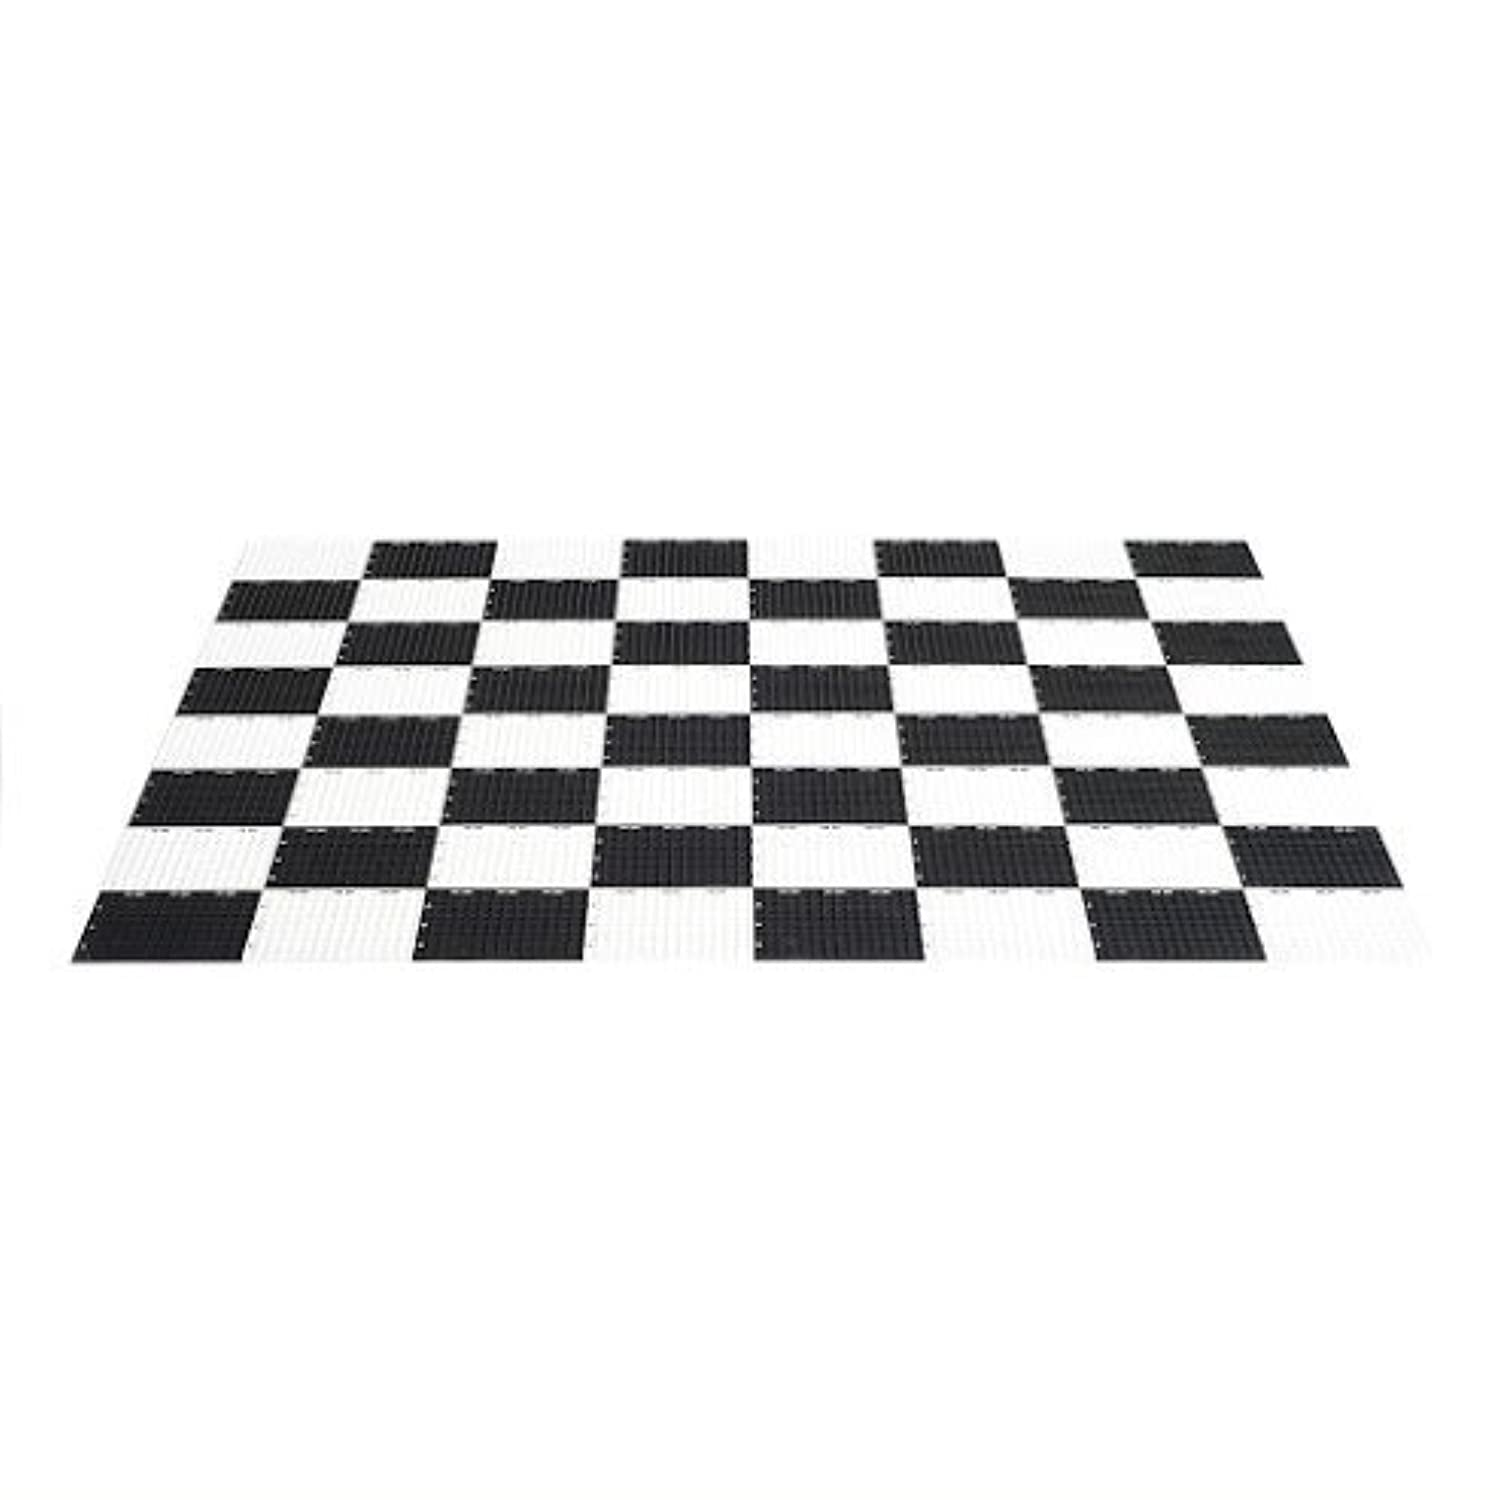 MegaChess Giant Checkers Game Board - Plastic - Giant Size